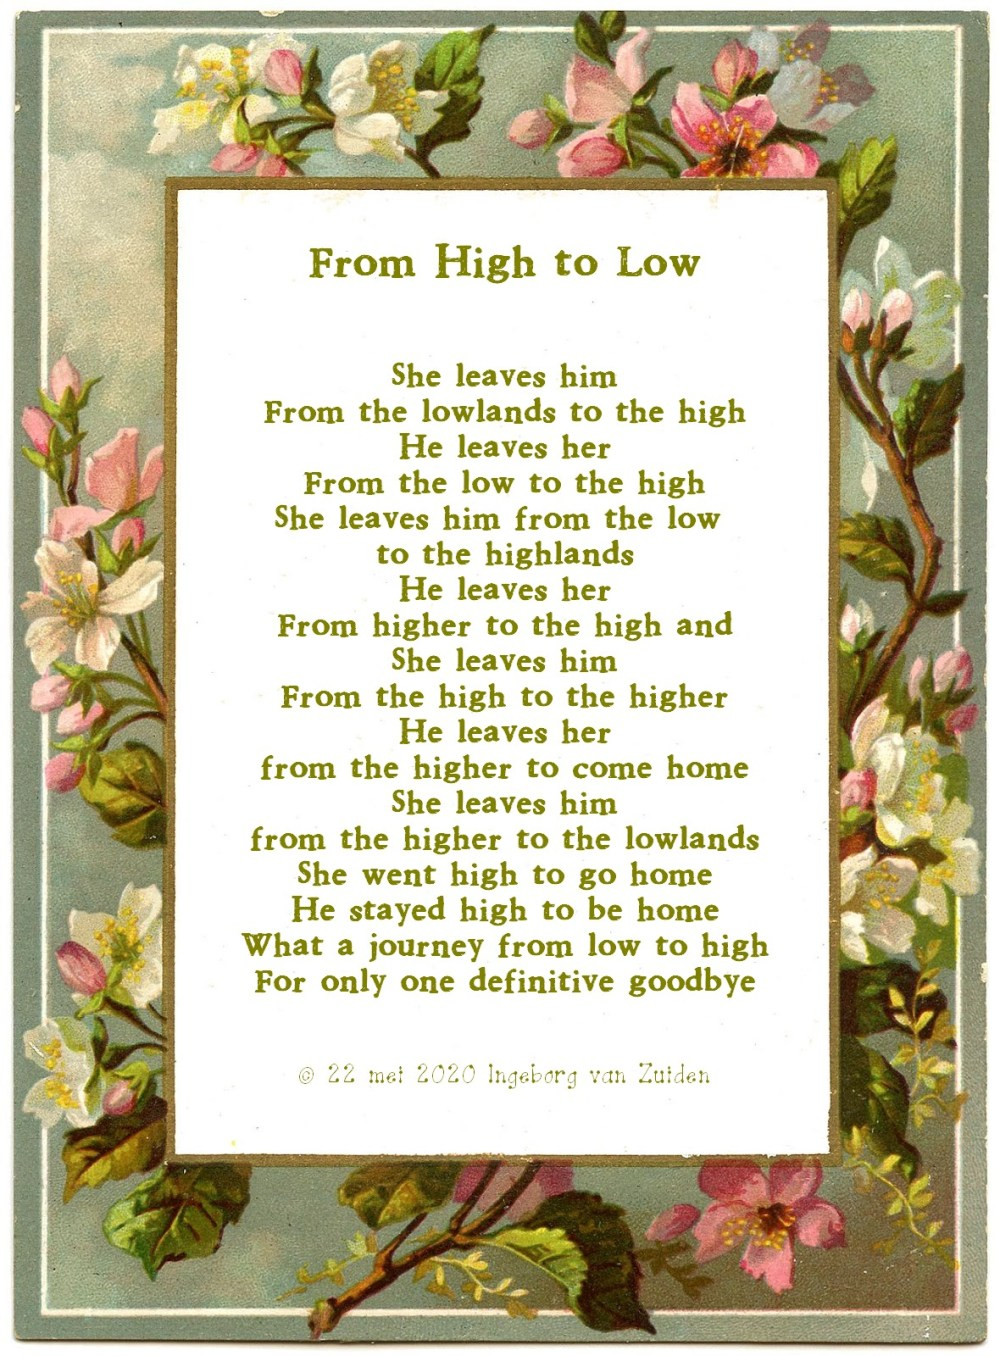 Poem 'From High to Low' by Ingeborg van Zuiden  She leaves him From the lowlands to the high He leaves her From the low to the high She leaves him from the low to the highlands He leaves her From higher to the high and She leaves him From the high to the higher He leaves her from the higher to come home She leaves him from the higher to the lowlands She went high to go home  He stayed high to go home What a journey from low to high For only one definitive goodbye